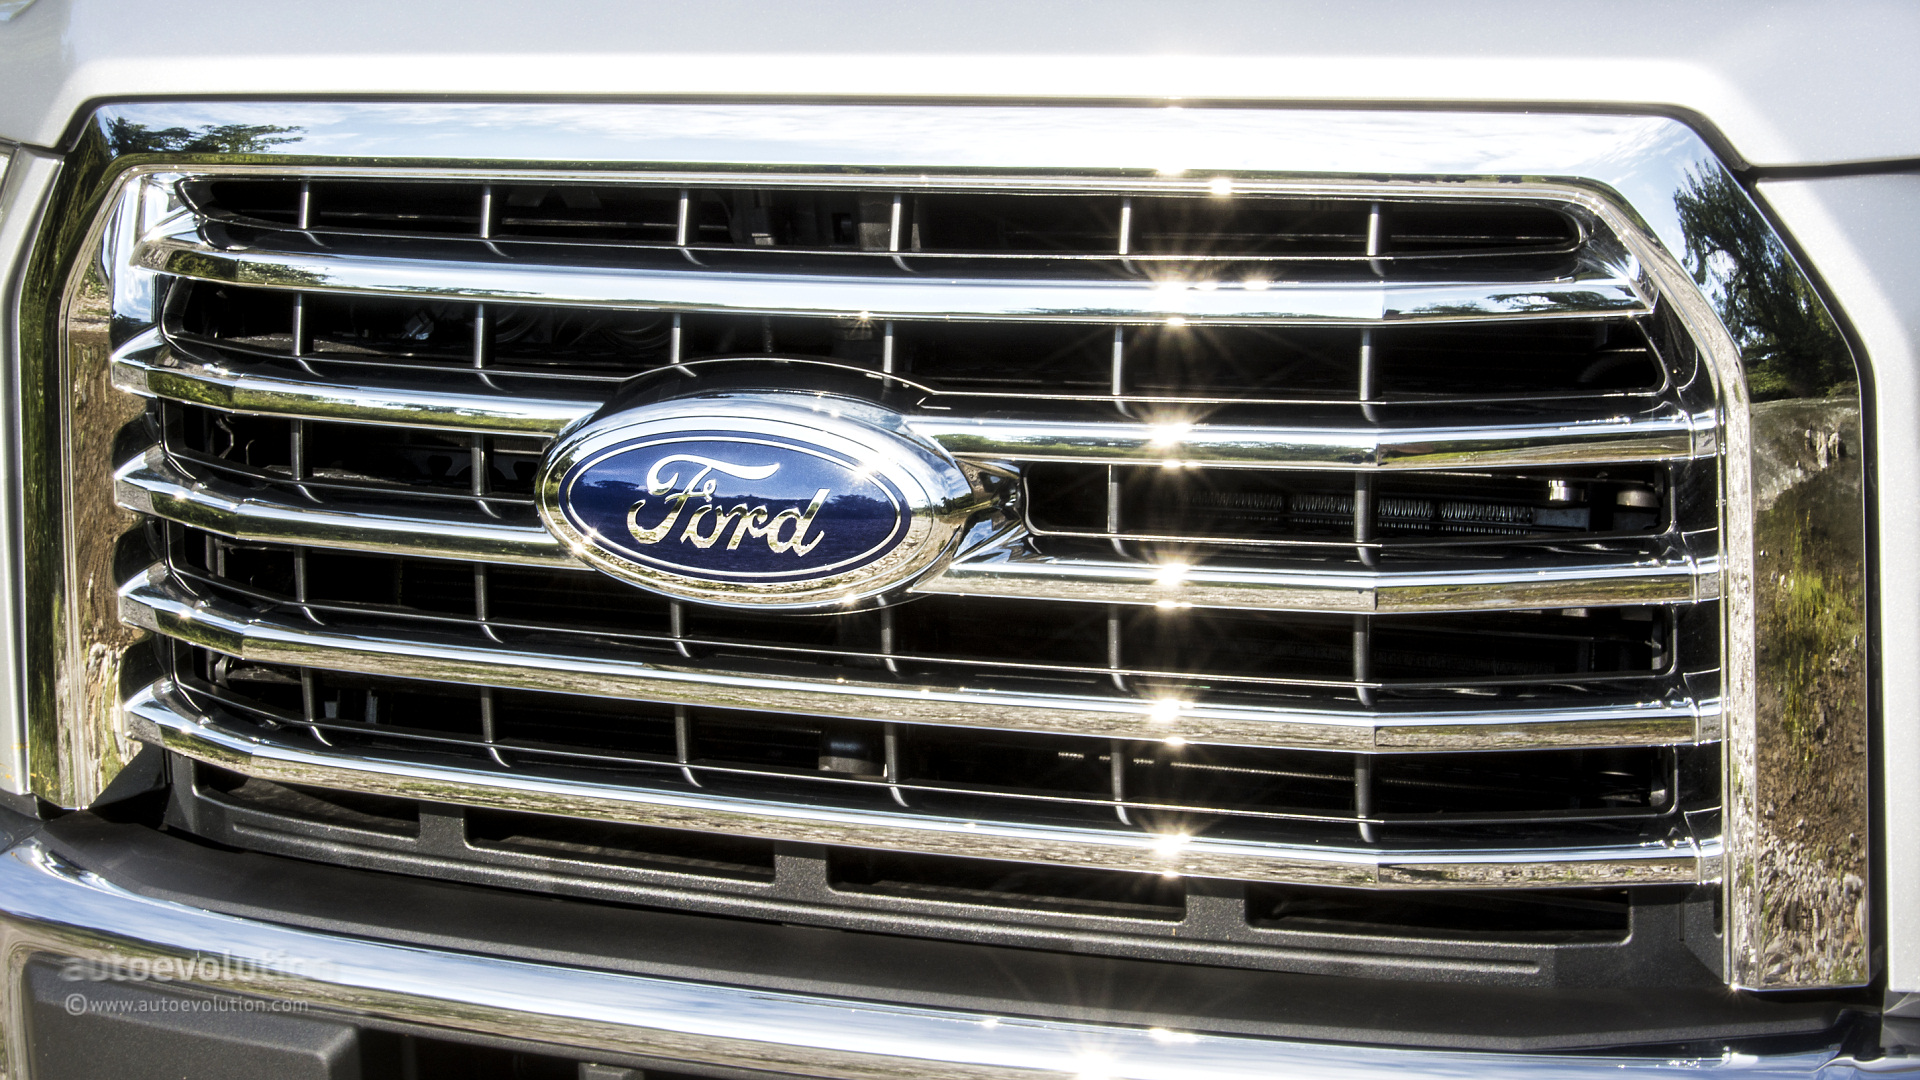 2015 FORD F-150 Review - autoevolution